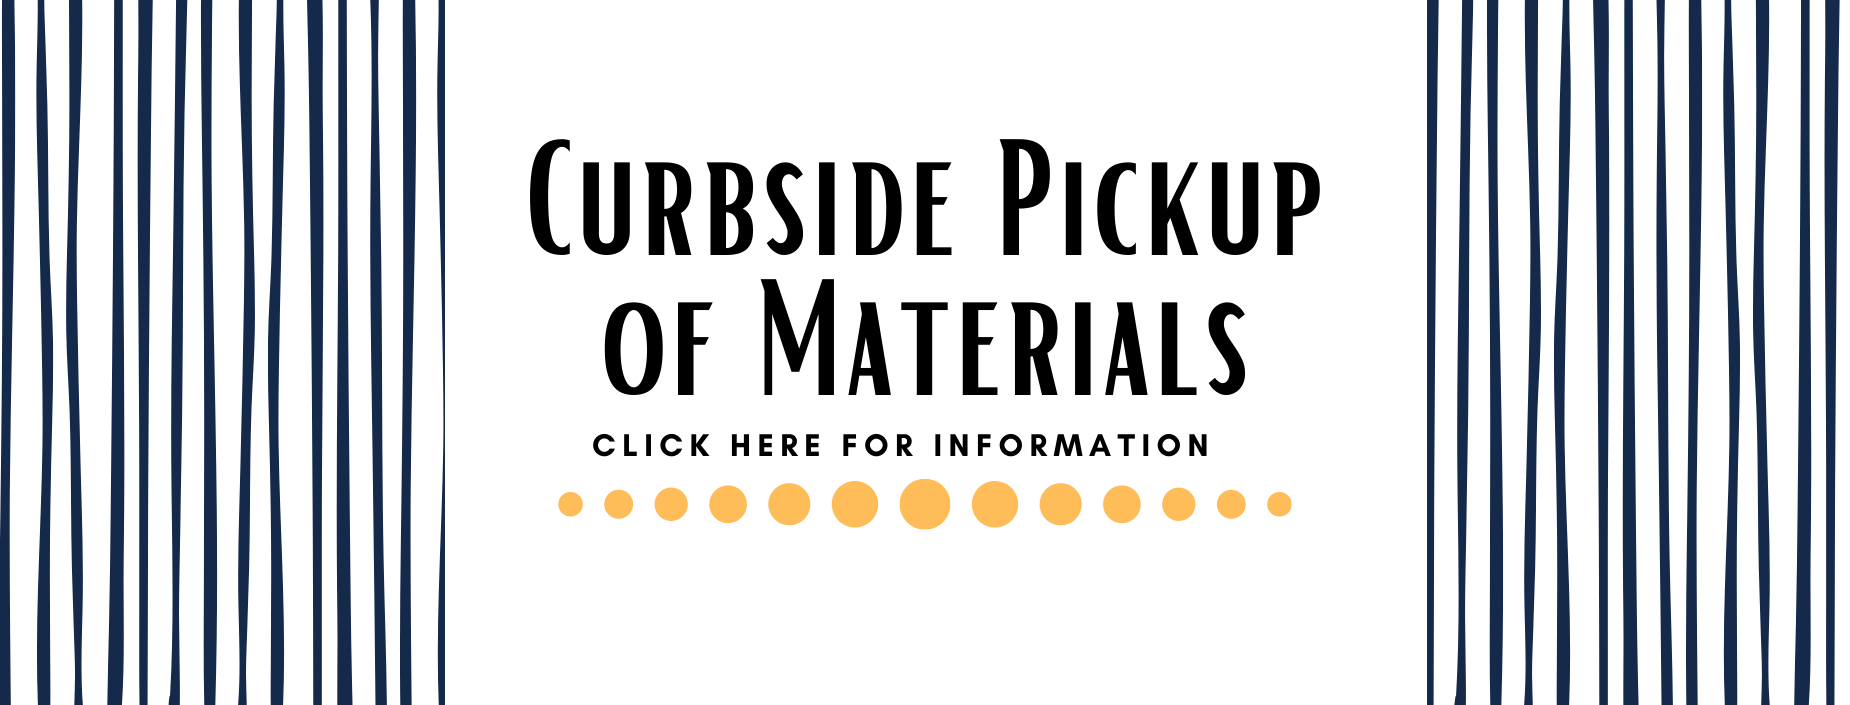 Curbside Pickup of Materials